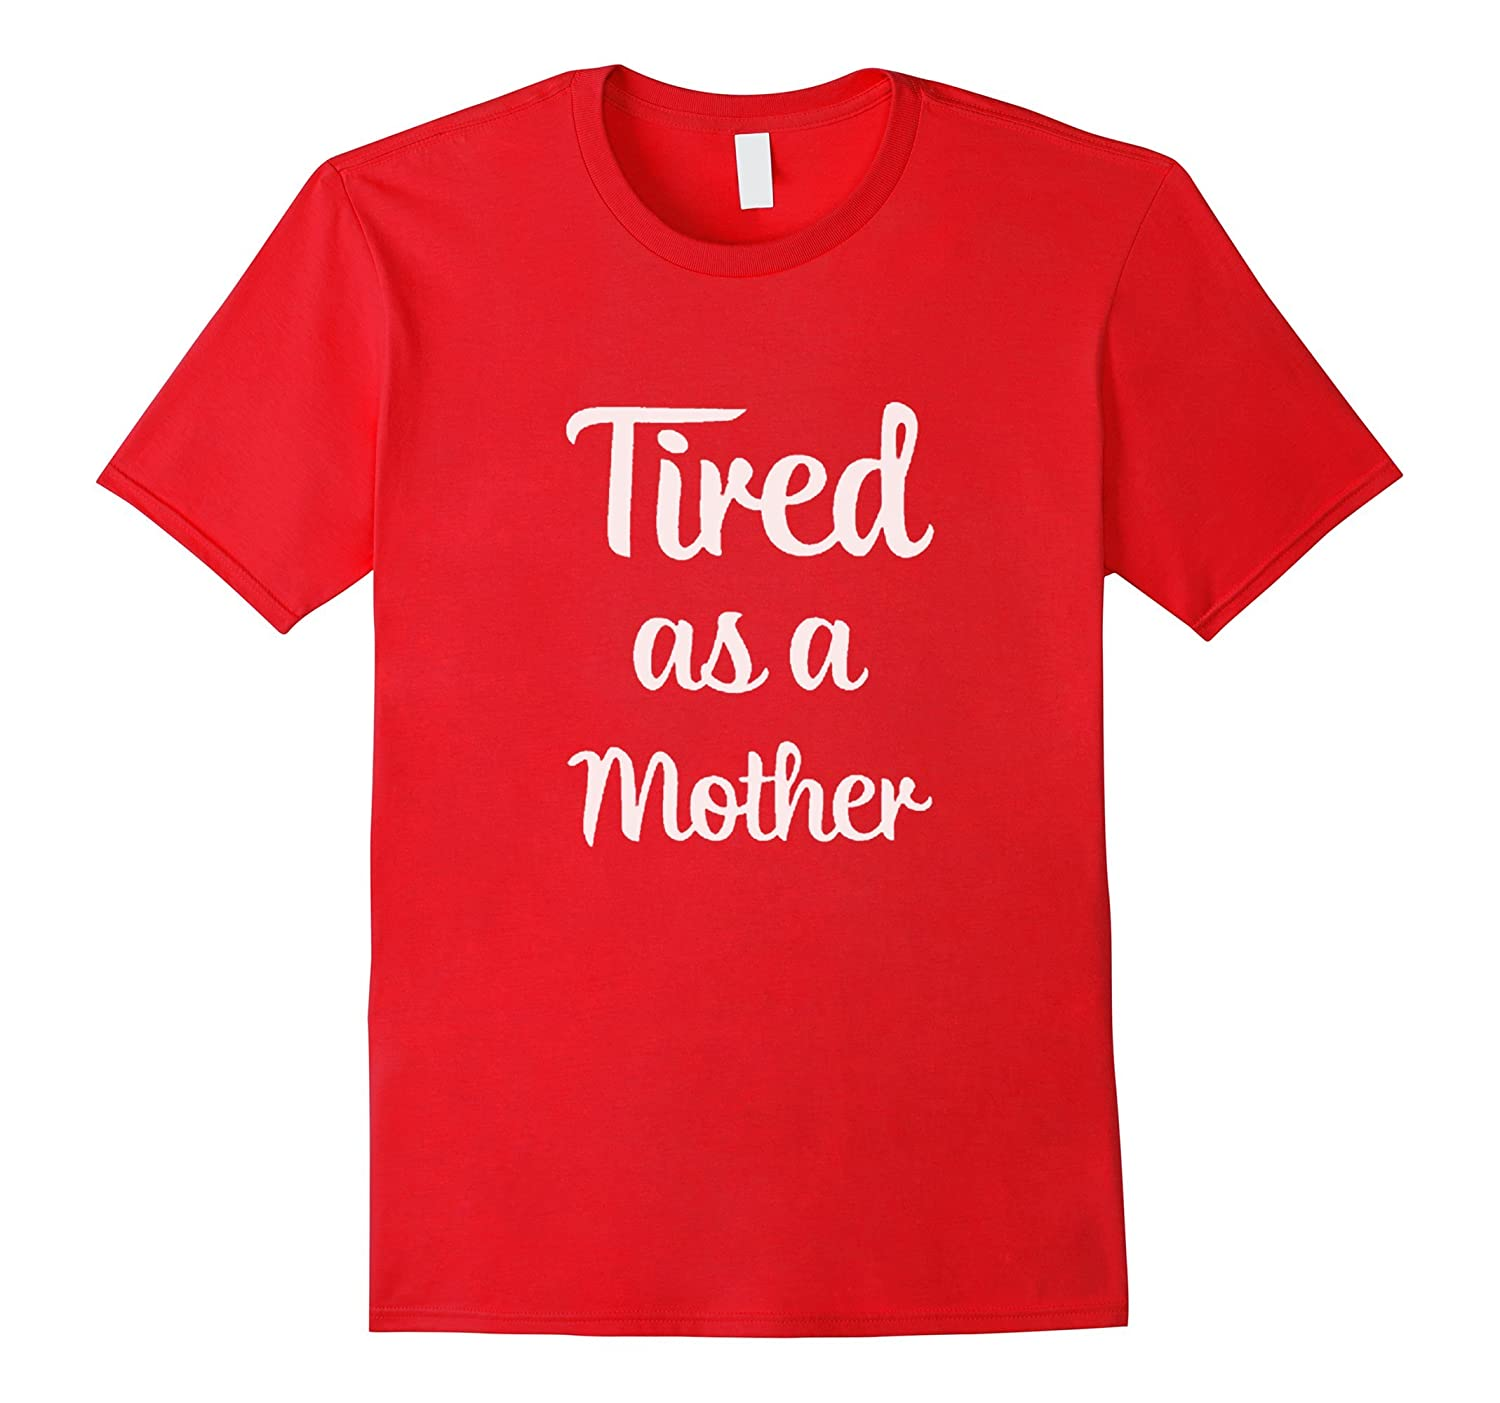 Tired as a mother T-shirt for our mother-CD